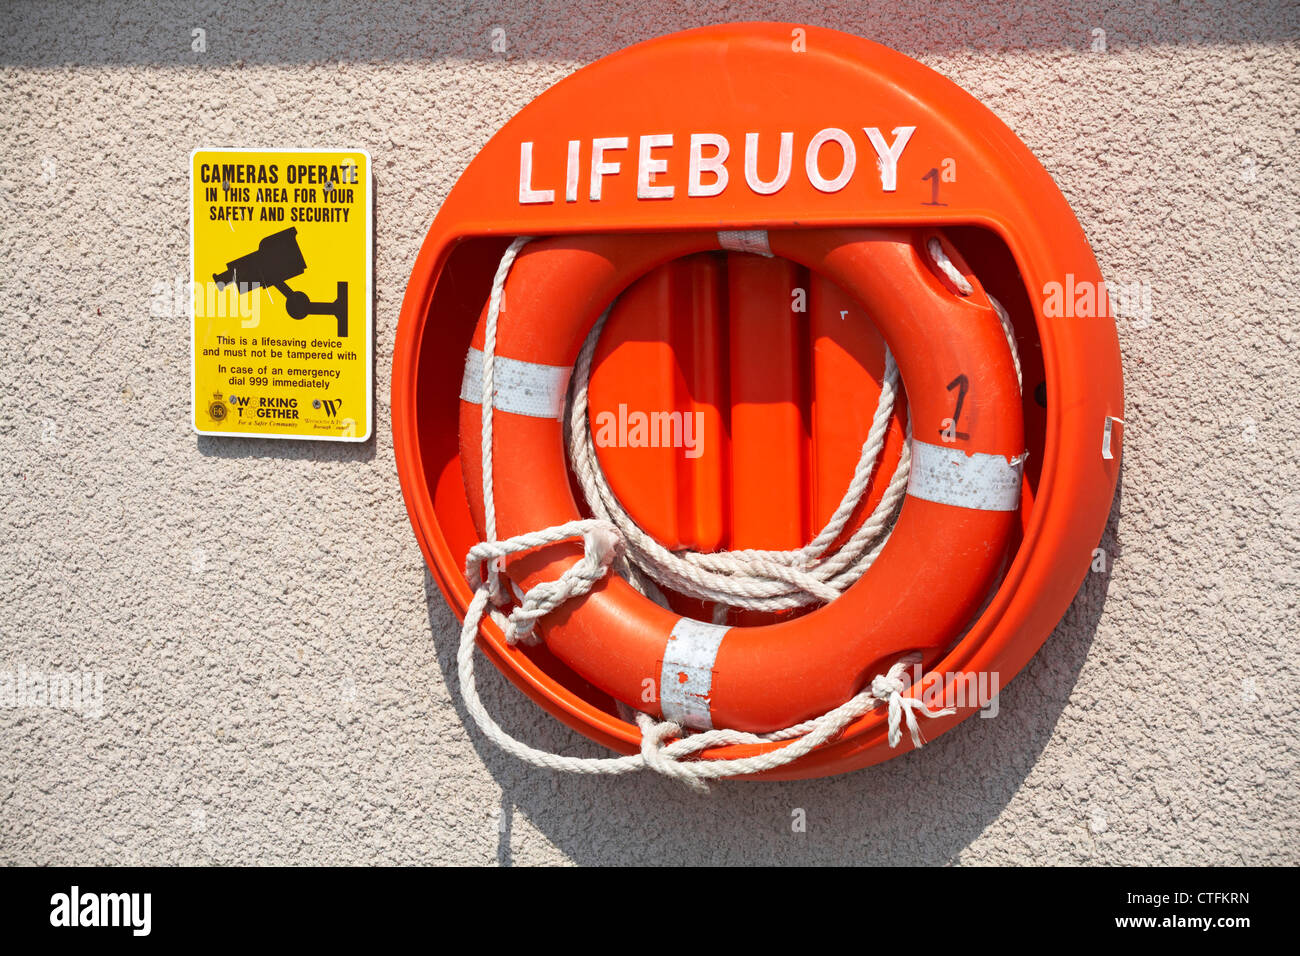 Lifebuoy ring with notice alongside advising cameras operate in the area at Weymouth in May Stock Photo